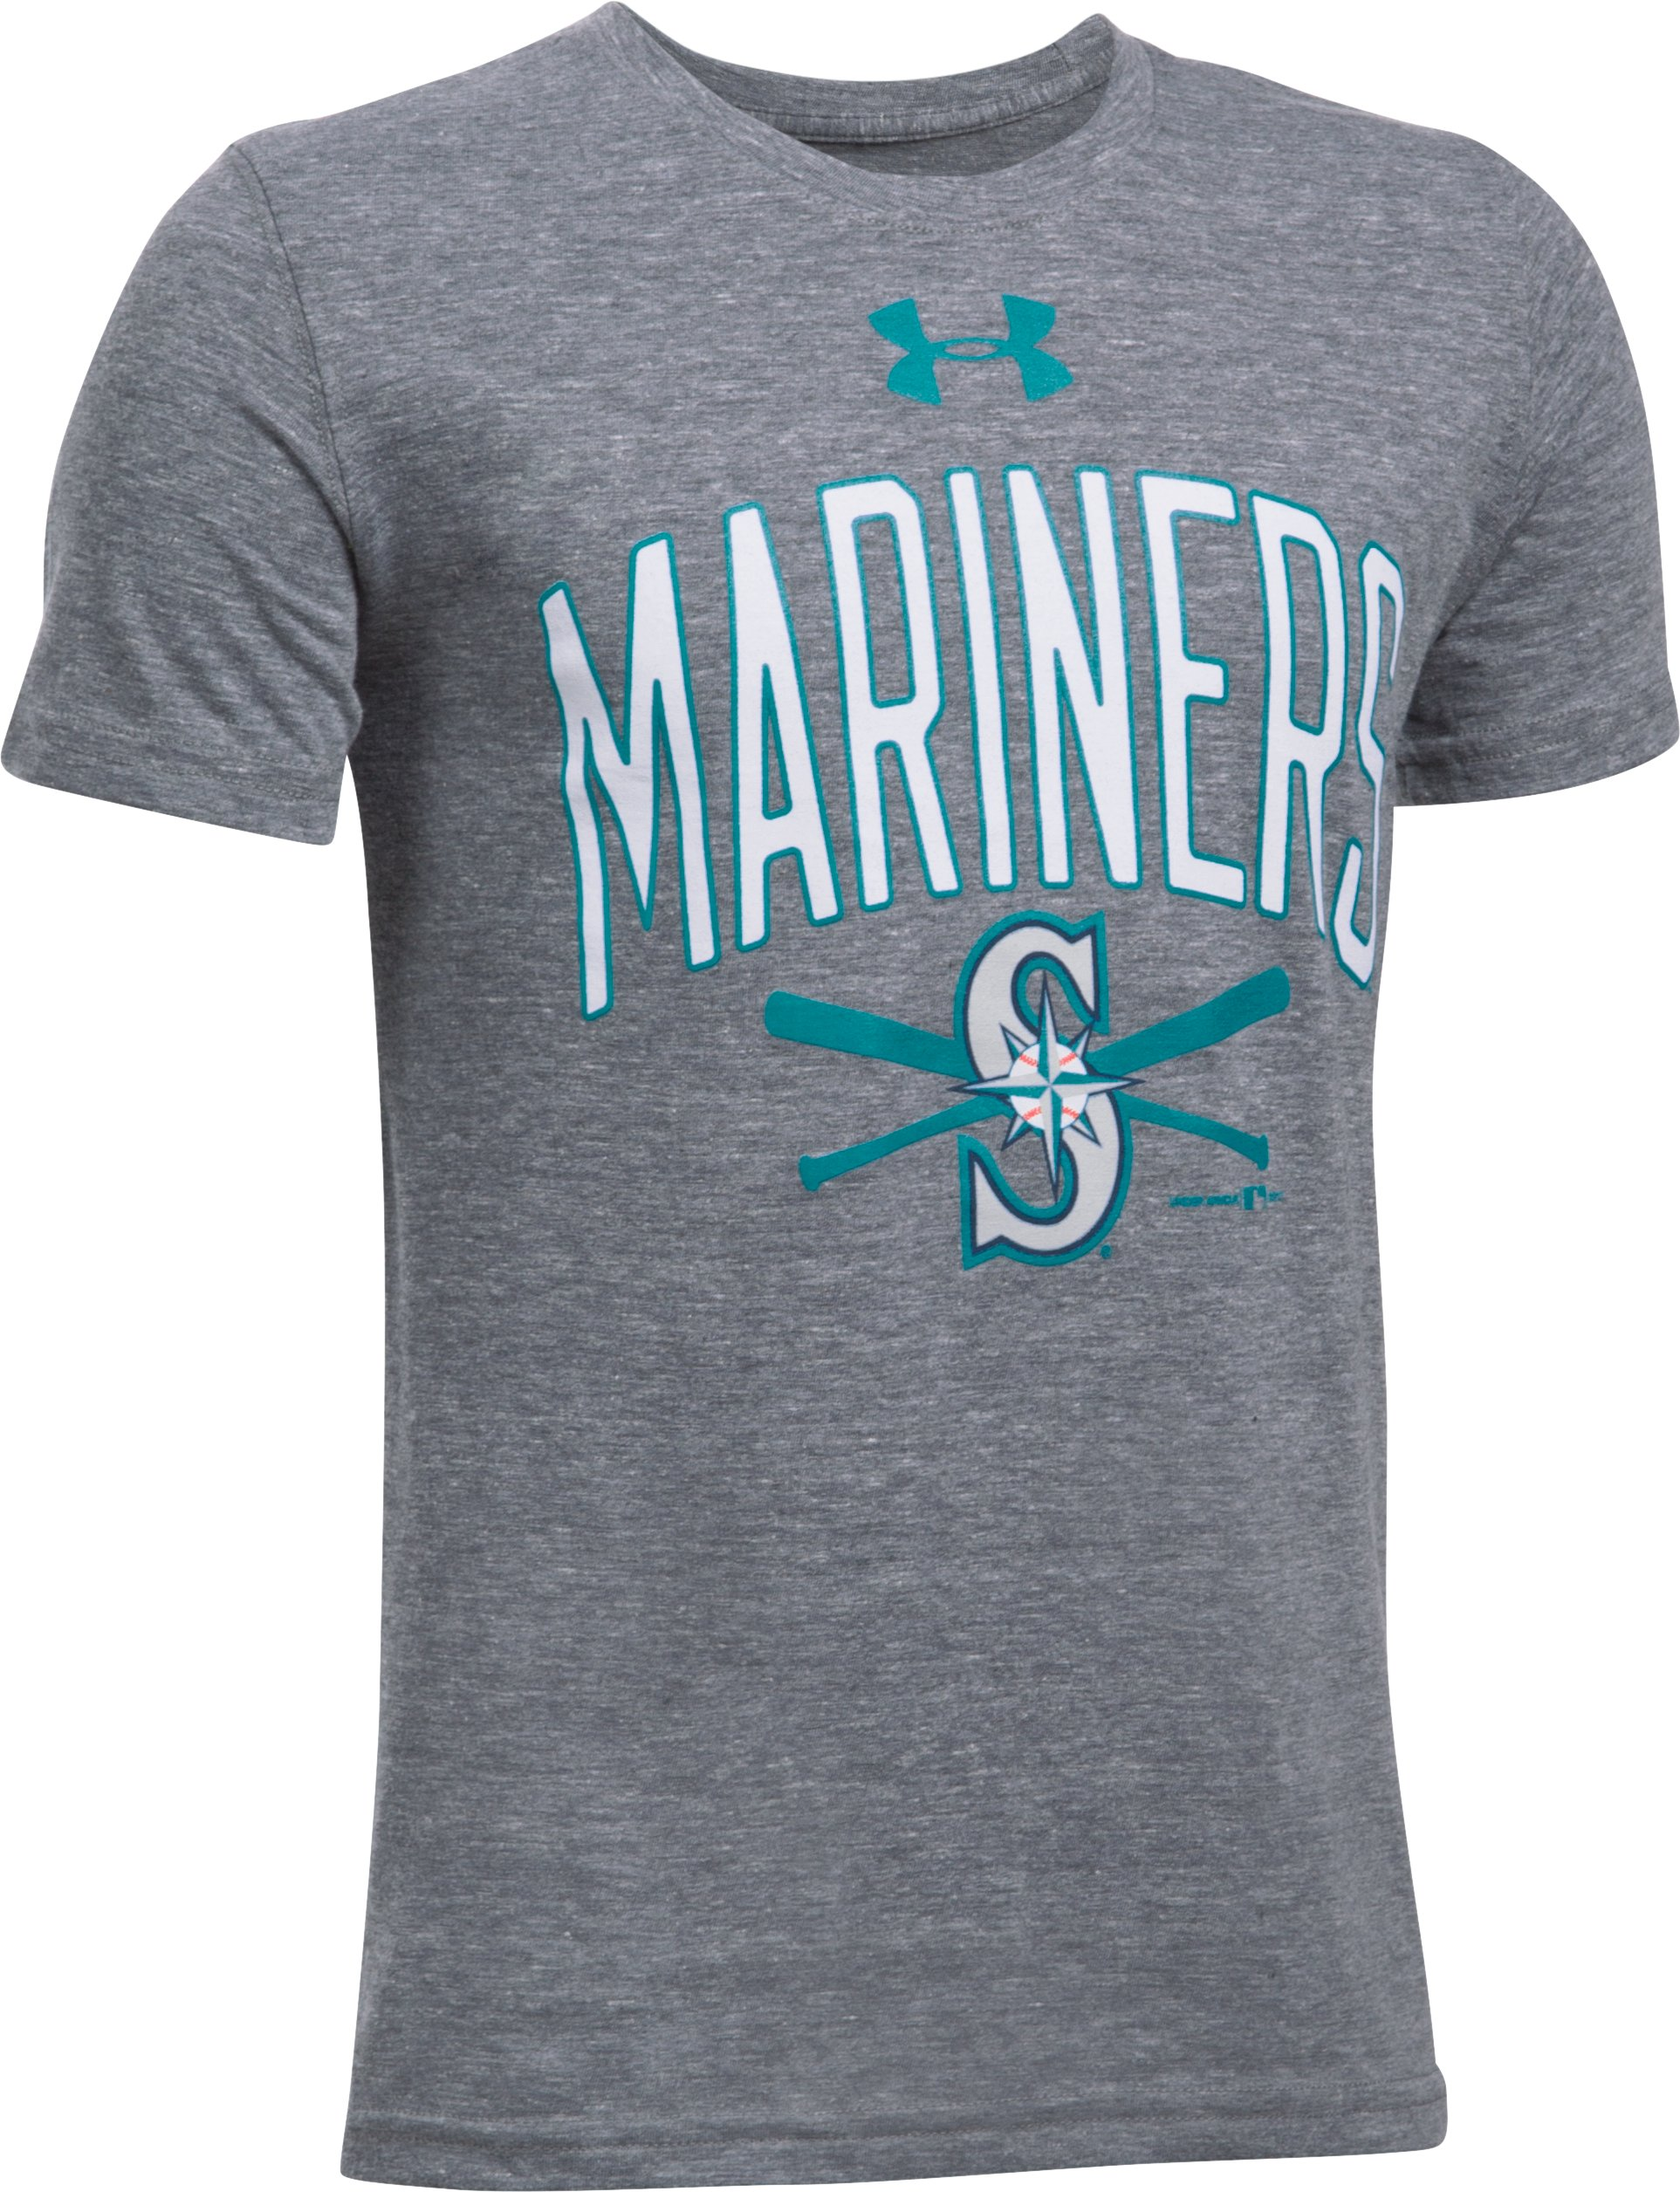 Boys' Seattle Mariners Tri-Blend T-Shirt, True Gray Heather